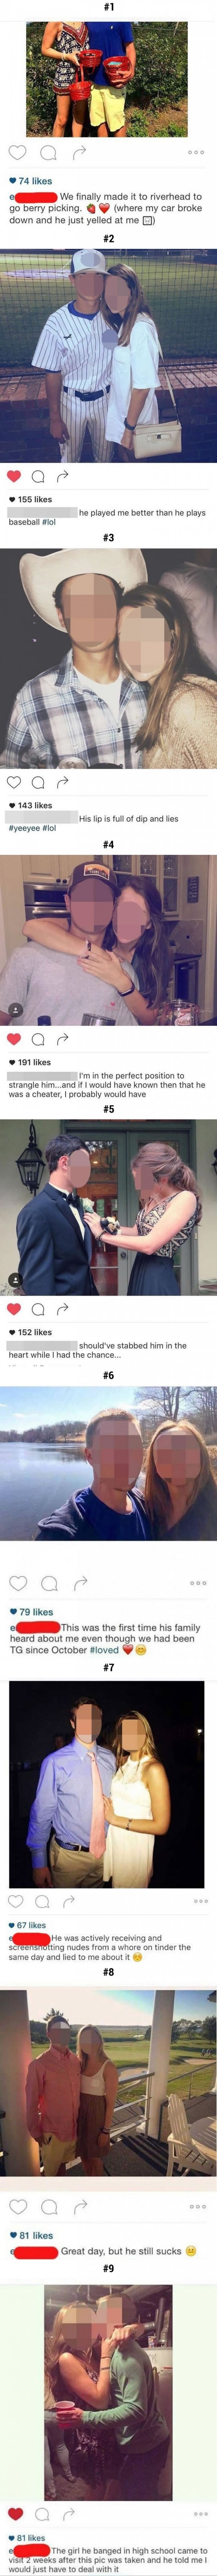 Girl changes insta captions after she finds out her bf is cheating on her